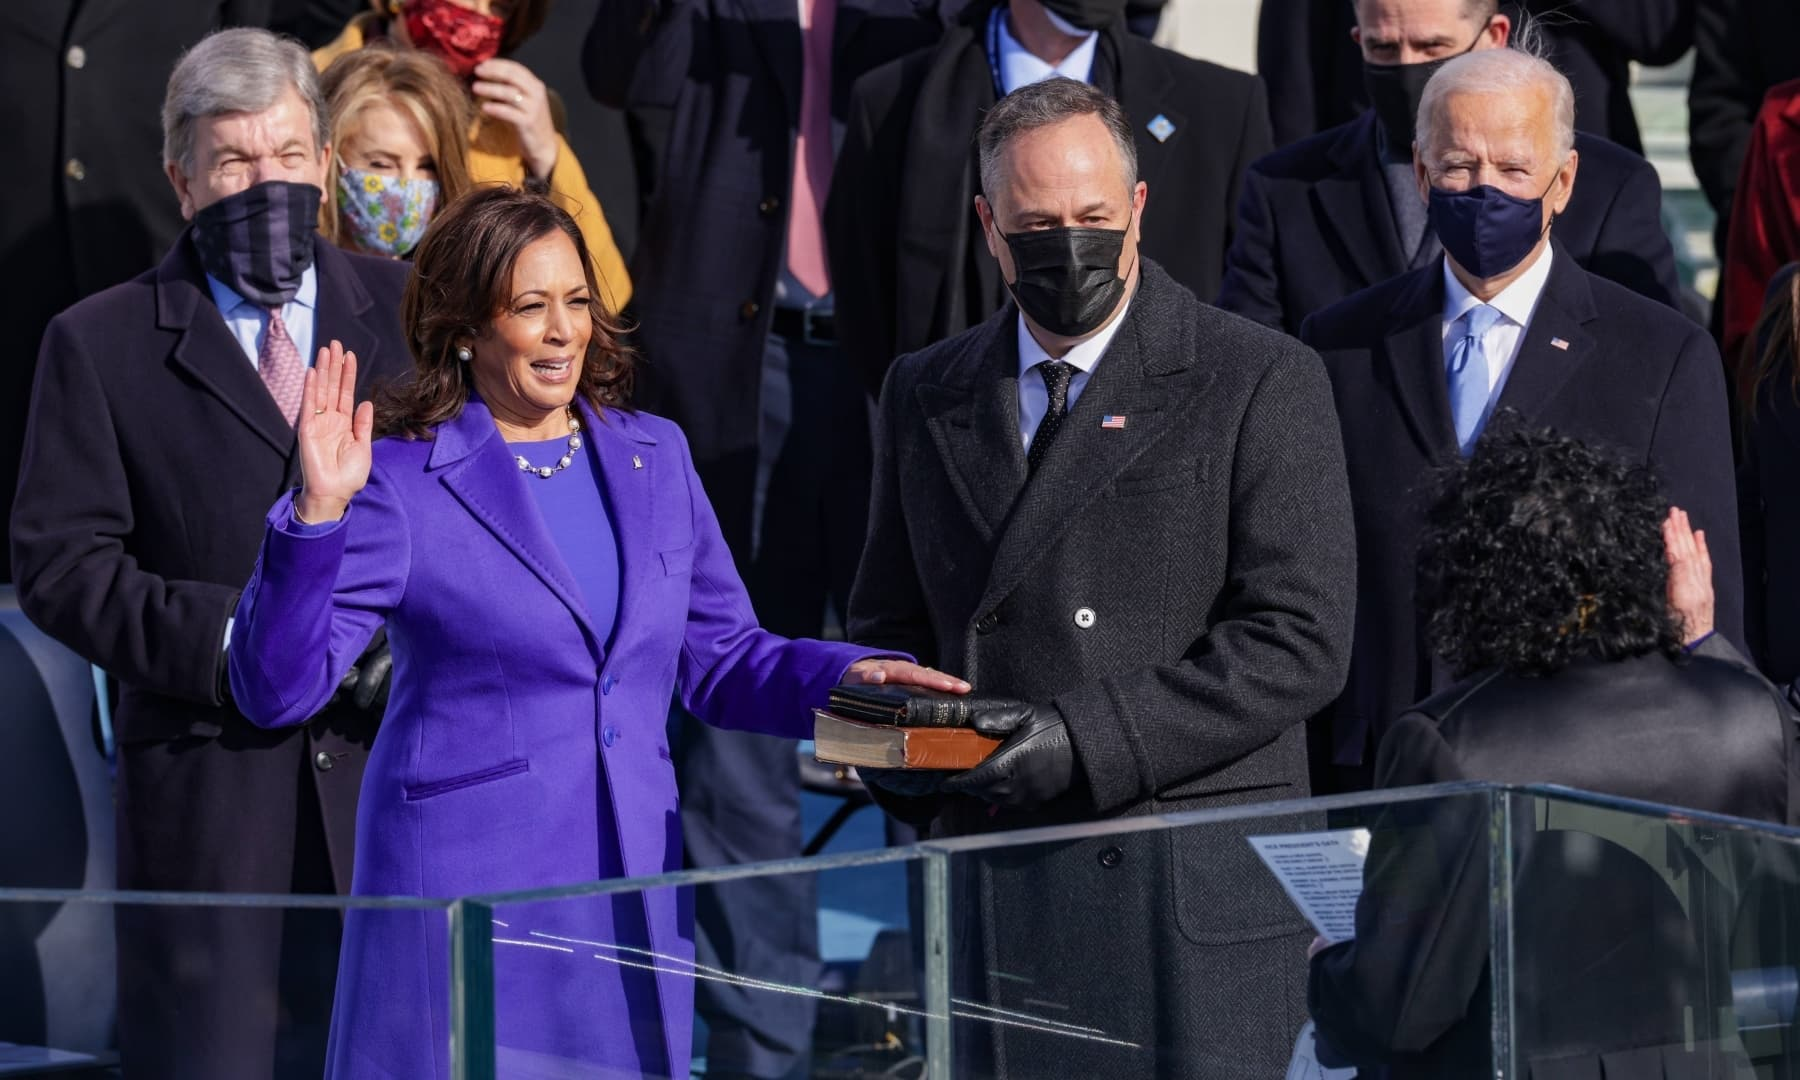 Kamala Harris is sworn is as US Vice President as her husband Doug Emhoff looks at the US Capitol on January 20 in Washington, DC. — AFP